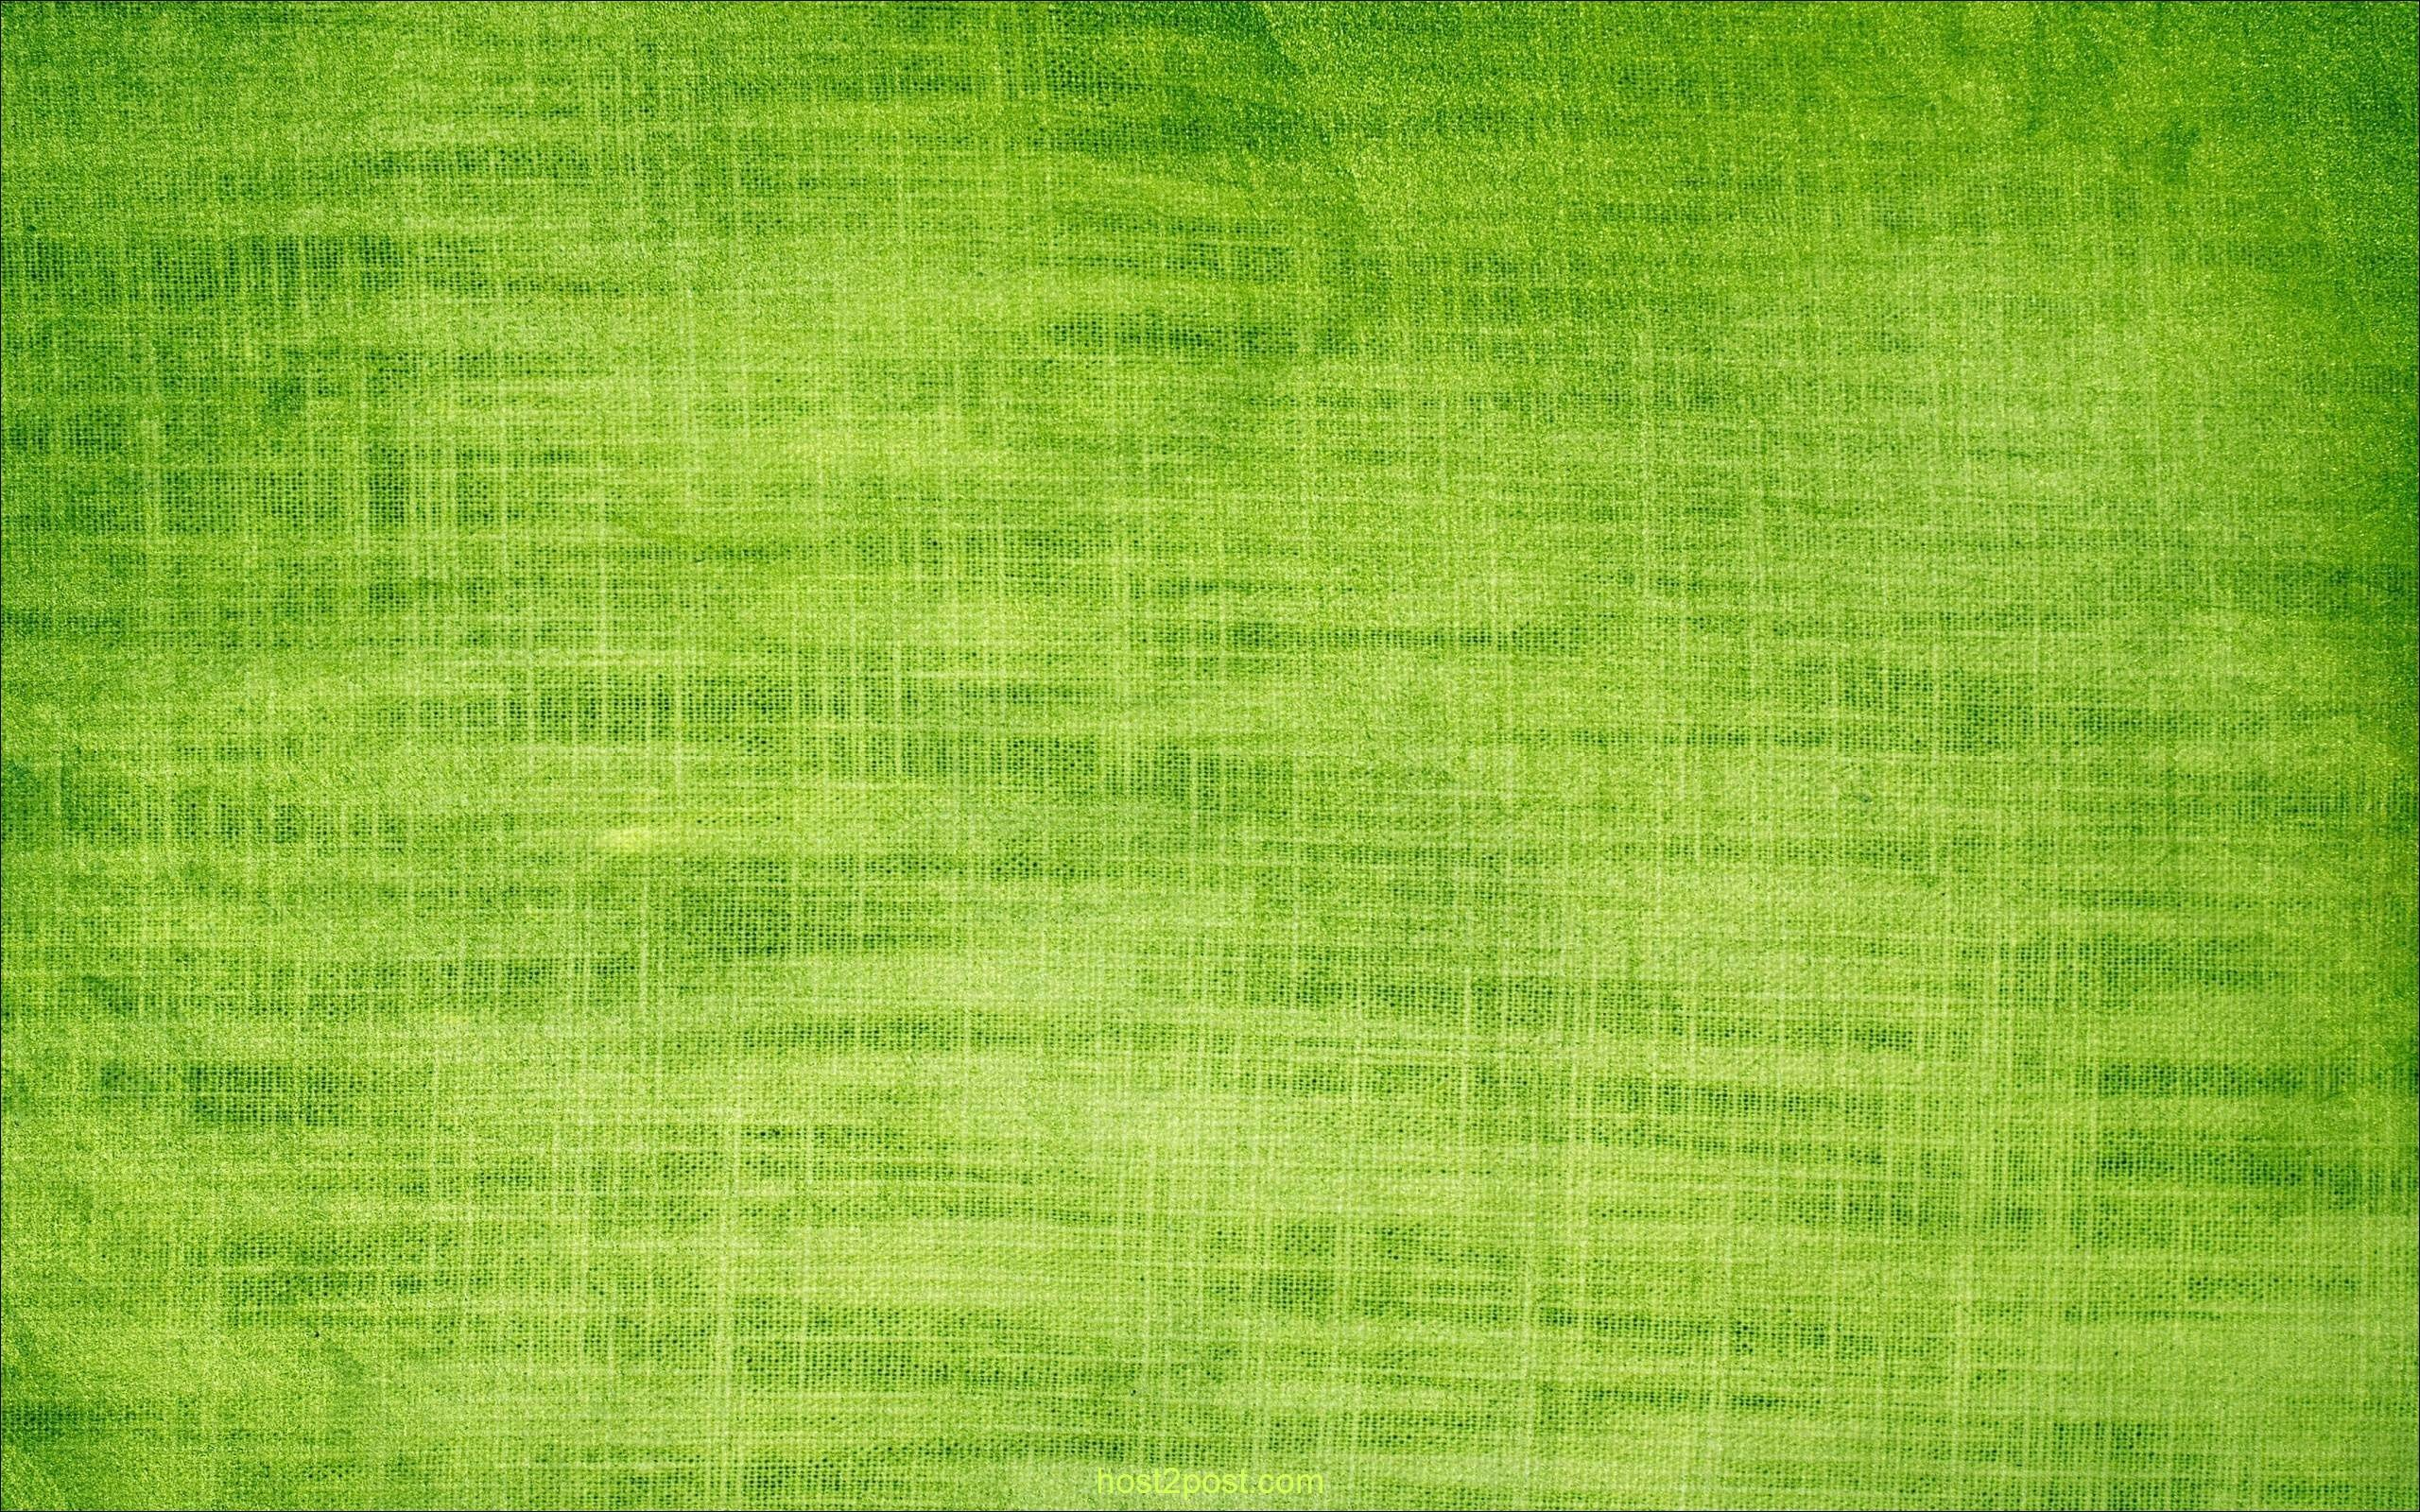 2560x1600 bright-green-rice-wallpapers-backgrounds